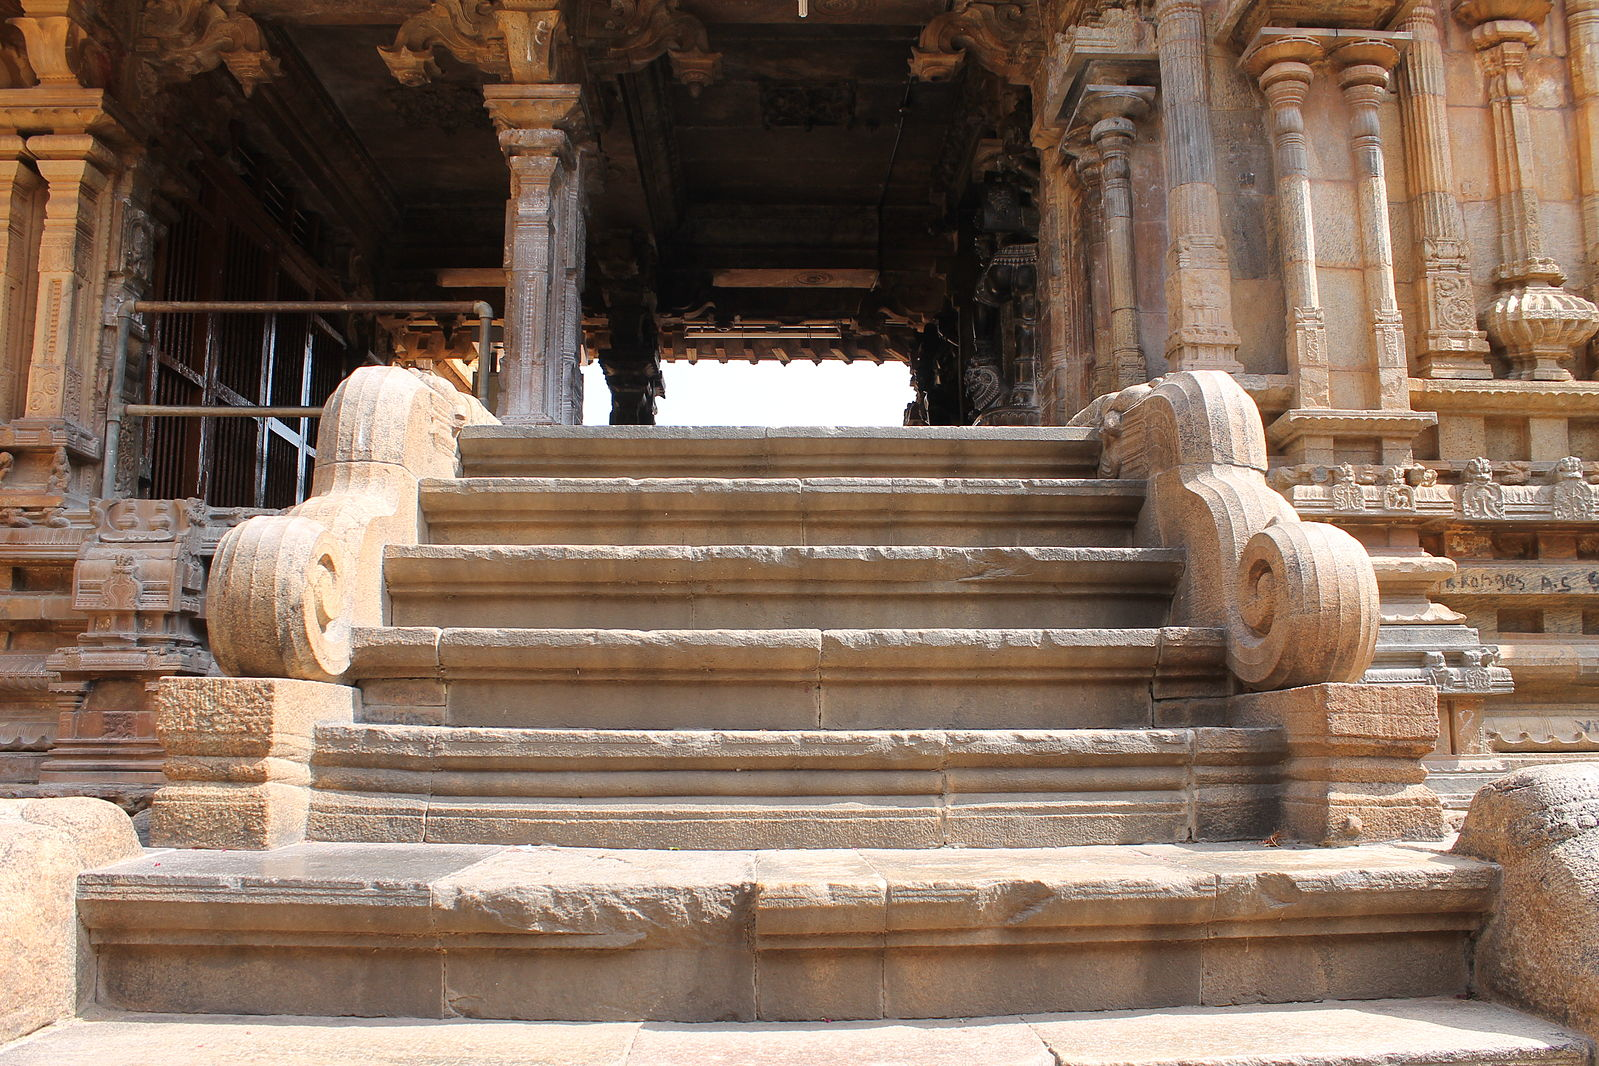 a_woderful_stone_steps_of_murugan_temple_inside_the_big_temple-1